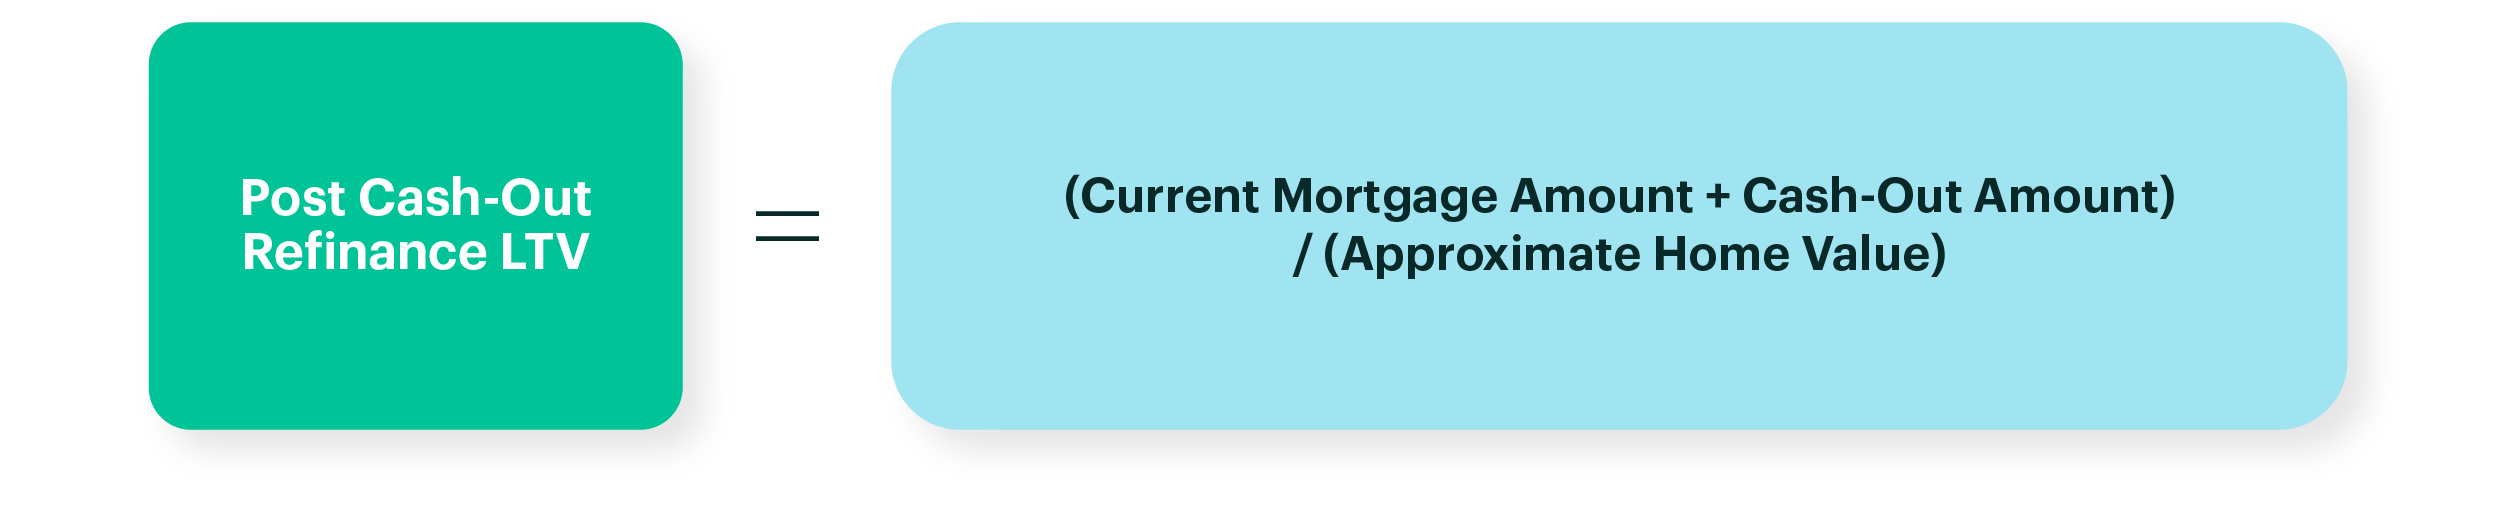 Diagram: Post Cash Out Refinance LTV = (Current Mortgage Amount + Cash Out Amount) / (Approximate Home Value)